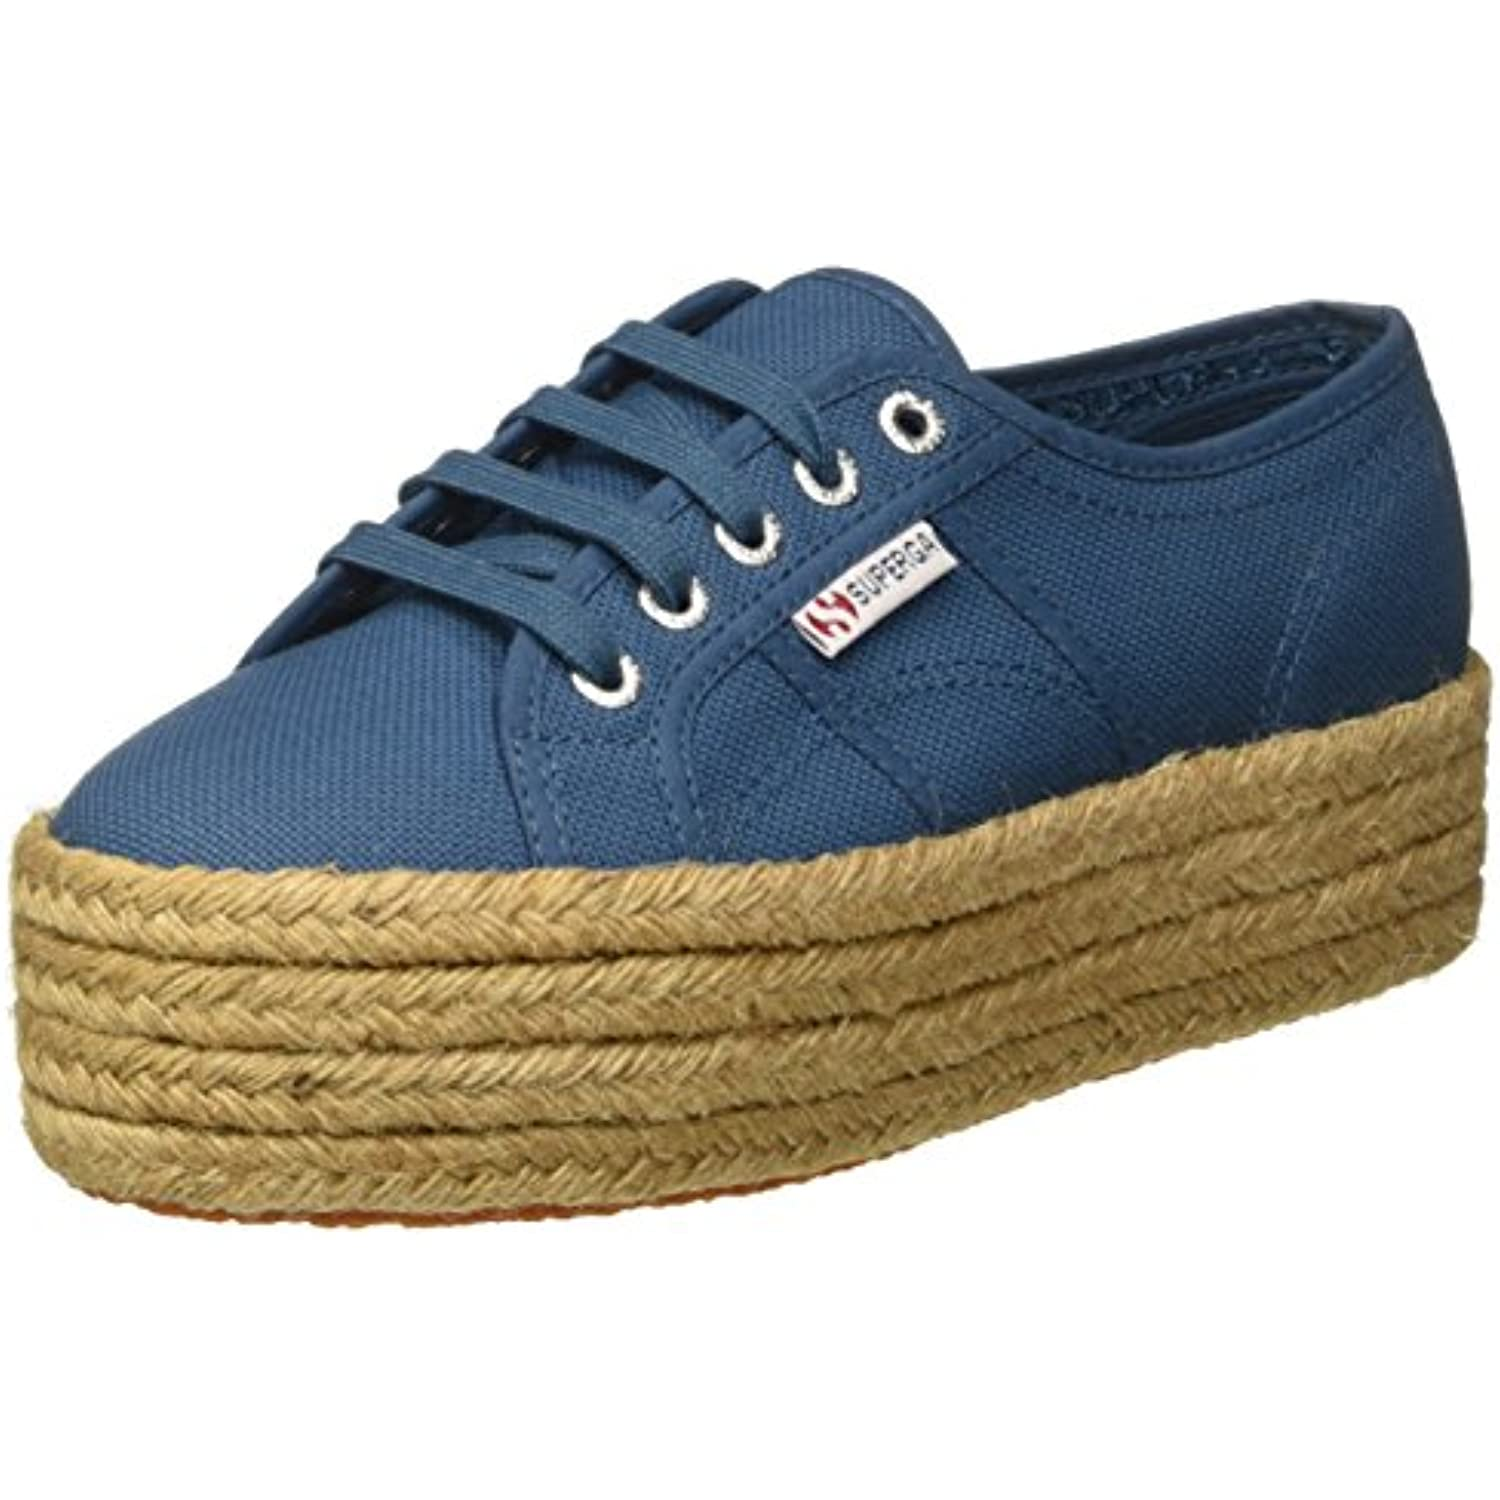 Cotropew Mixte Baskets Adulte Superga Forme De 2790 Plate 50gxfnO